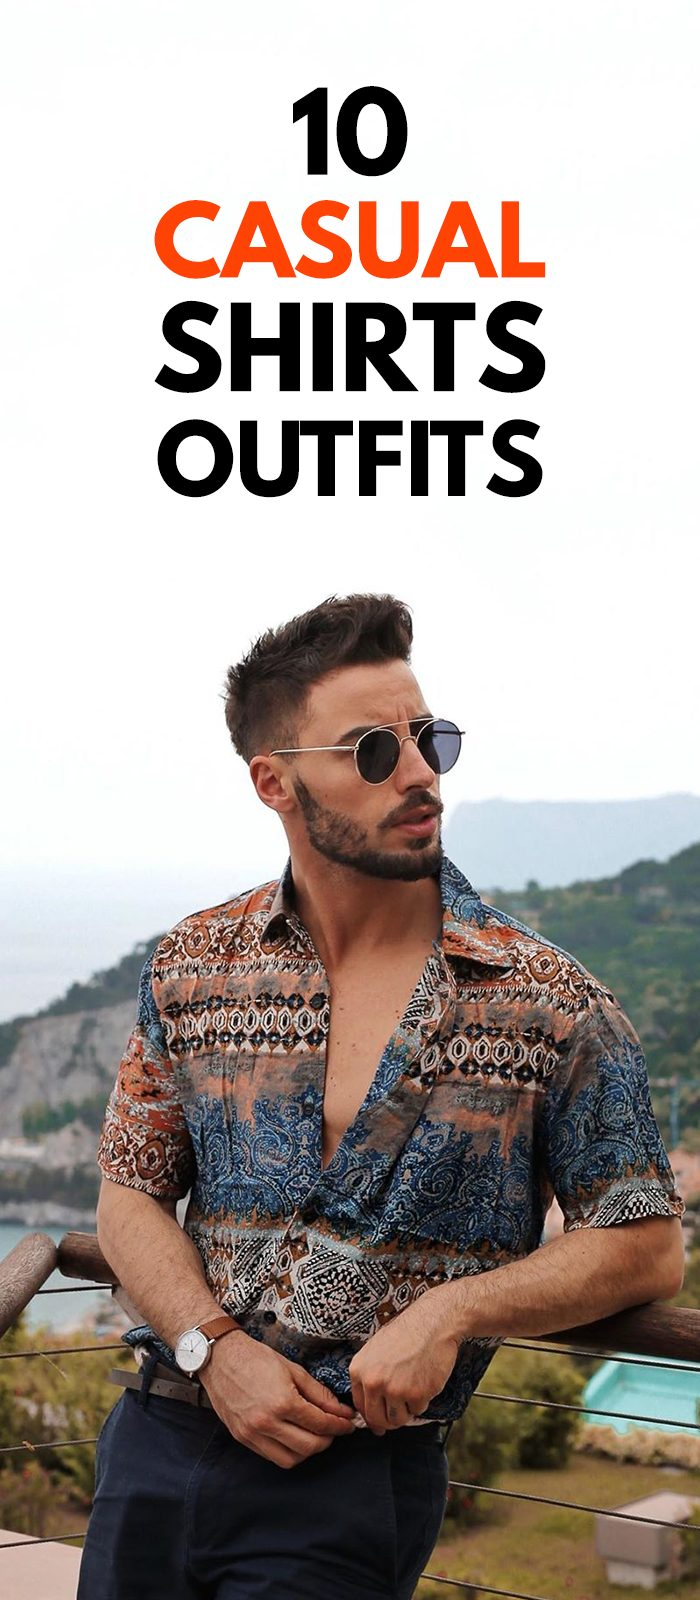 Printed Casual Shirt Outfit for Men